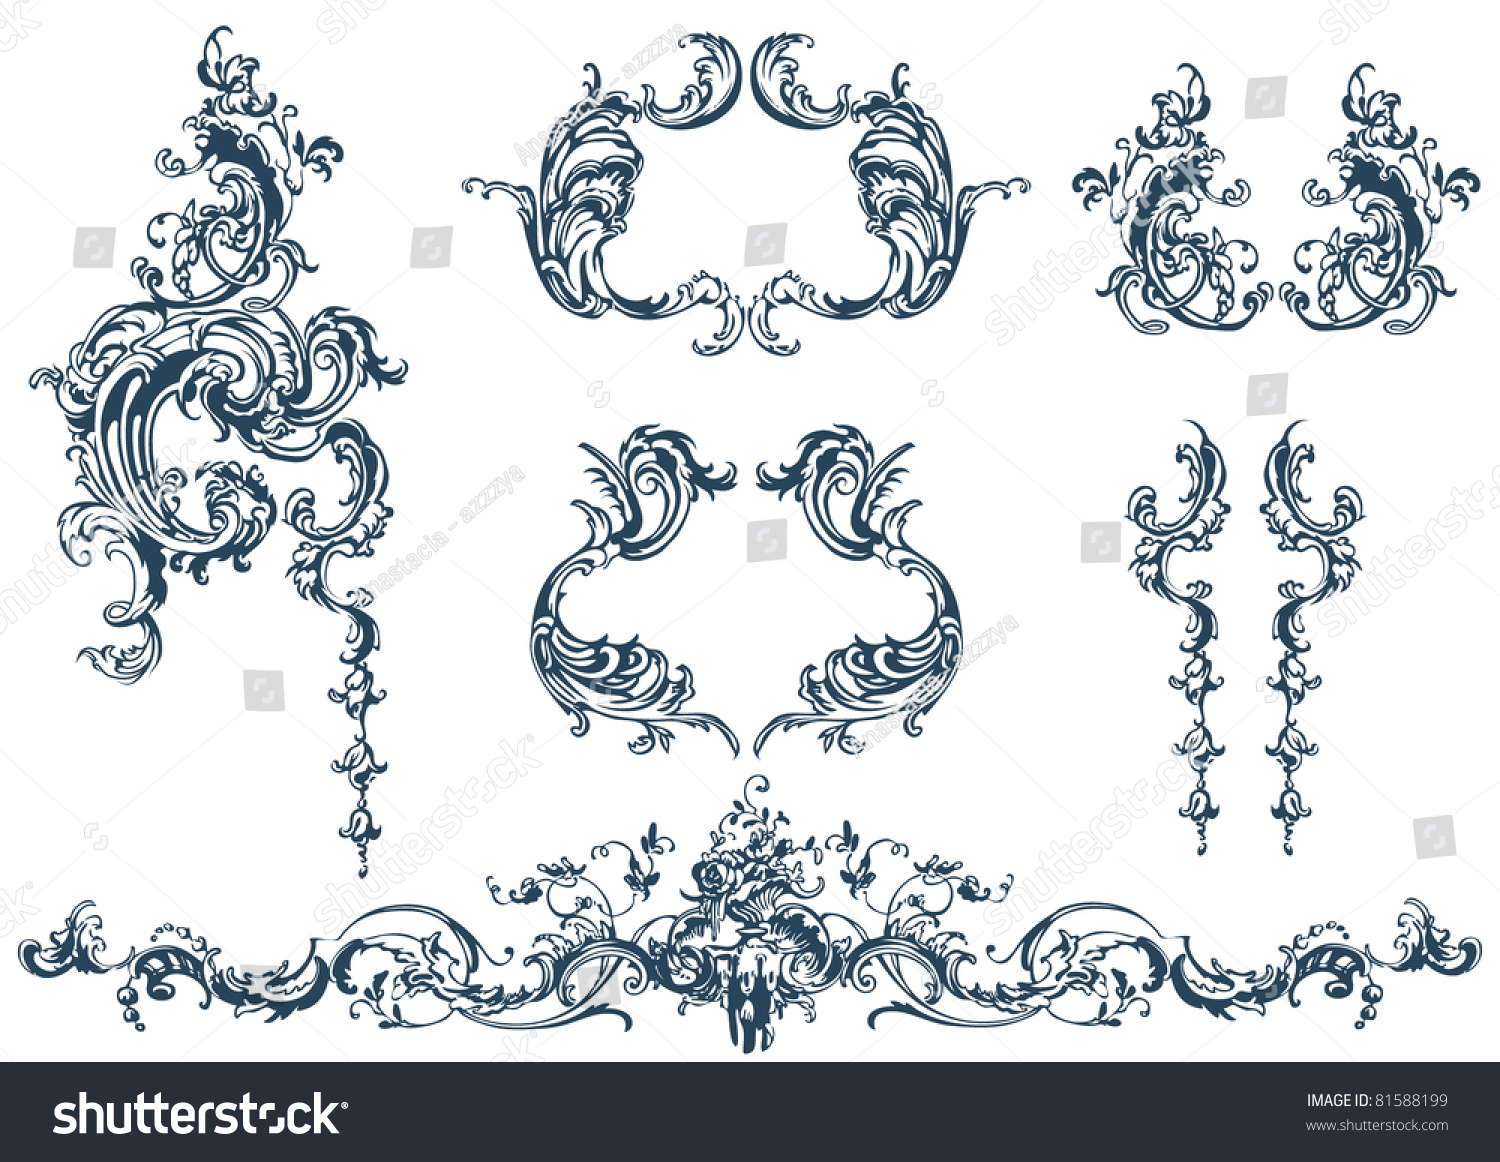 Decorative Vector Elements Rococo Style Stock Vector 81588199